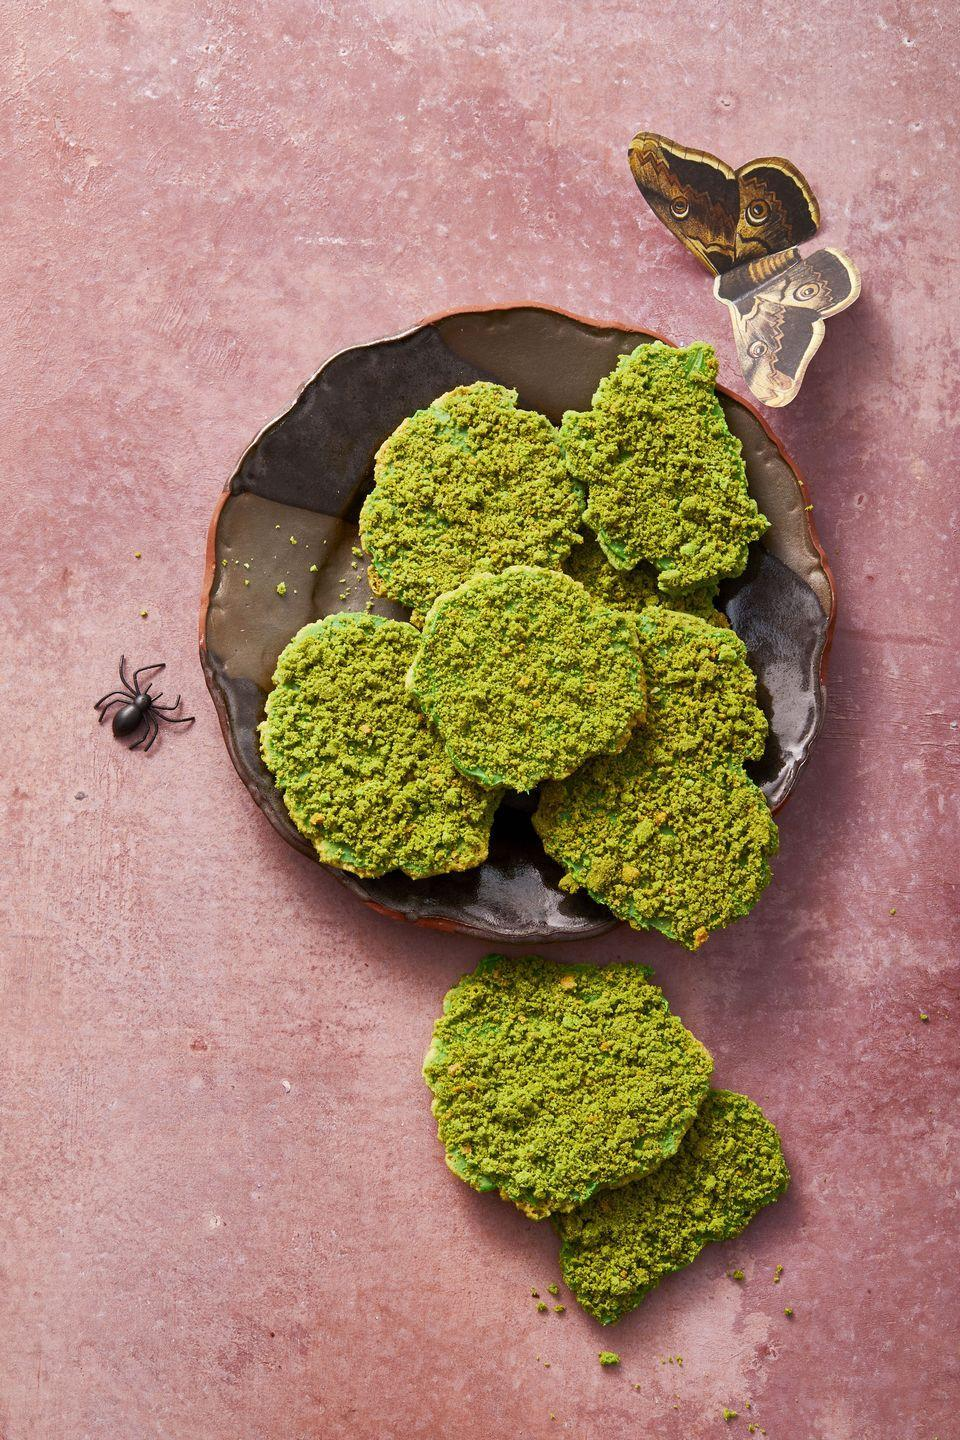 """<p>Crumbled graham crackers and a little green food coloring create these unique textured treats.</p><p><a href=""""https://www.goodhousekeeping.com/food-recipes/a34330679/moss-cookies-recipe/"""" rel=""""nofollow noopener"""" target=""""_blank"""" data-ylk=""""slk:Get the recipe for Moss Cookies »"""" class=""""link rapid-noclick-resp""""><em>Get the recipe for Moss Cookies »</em></a></p>"""